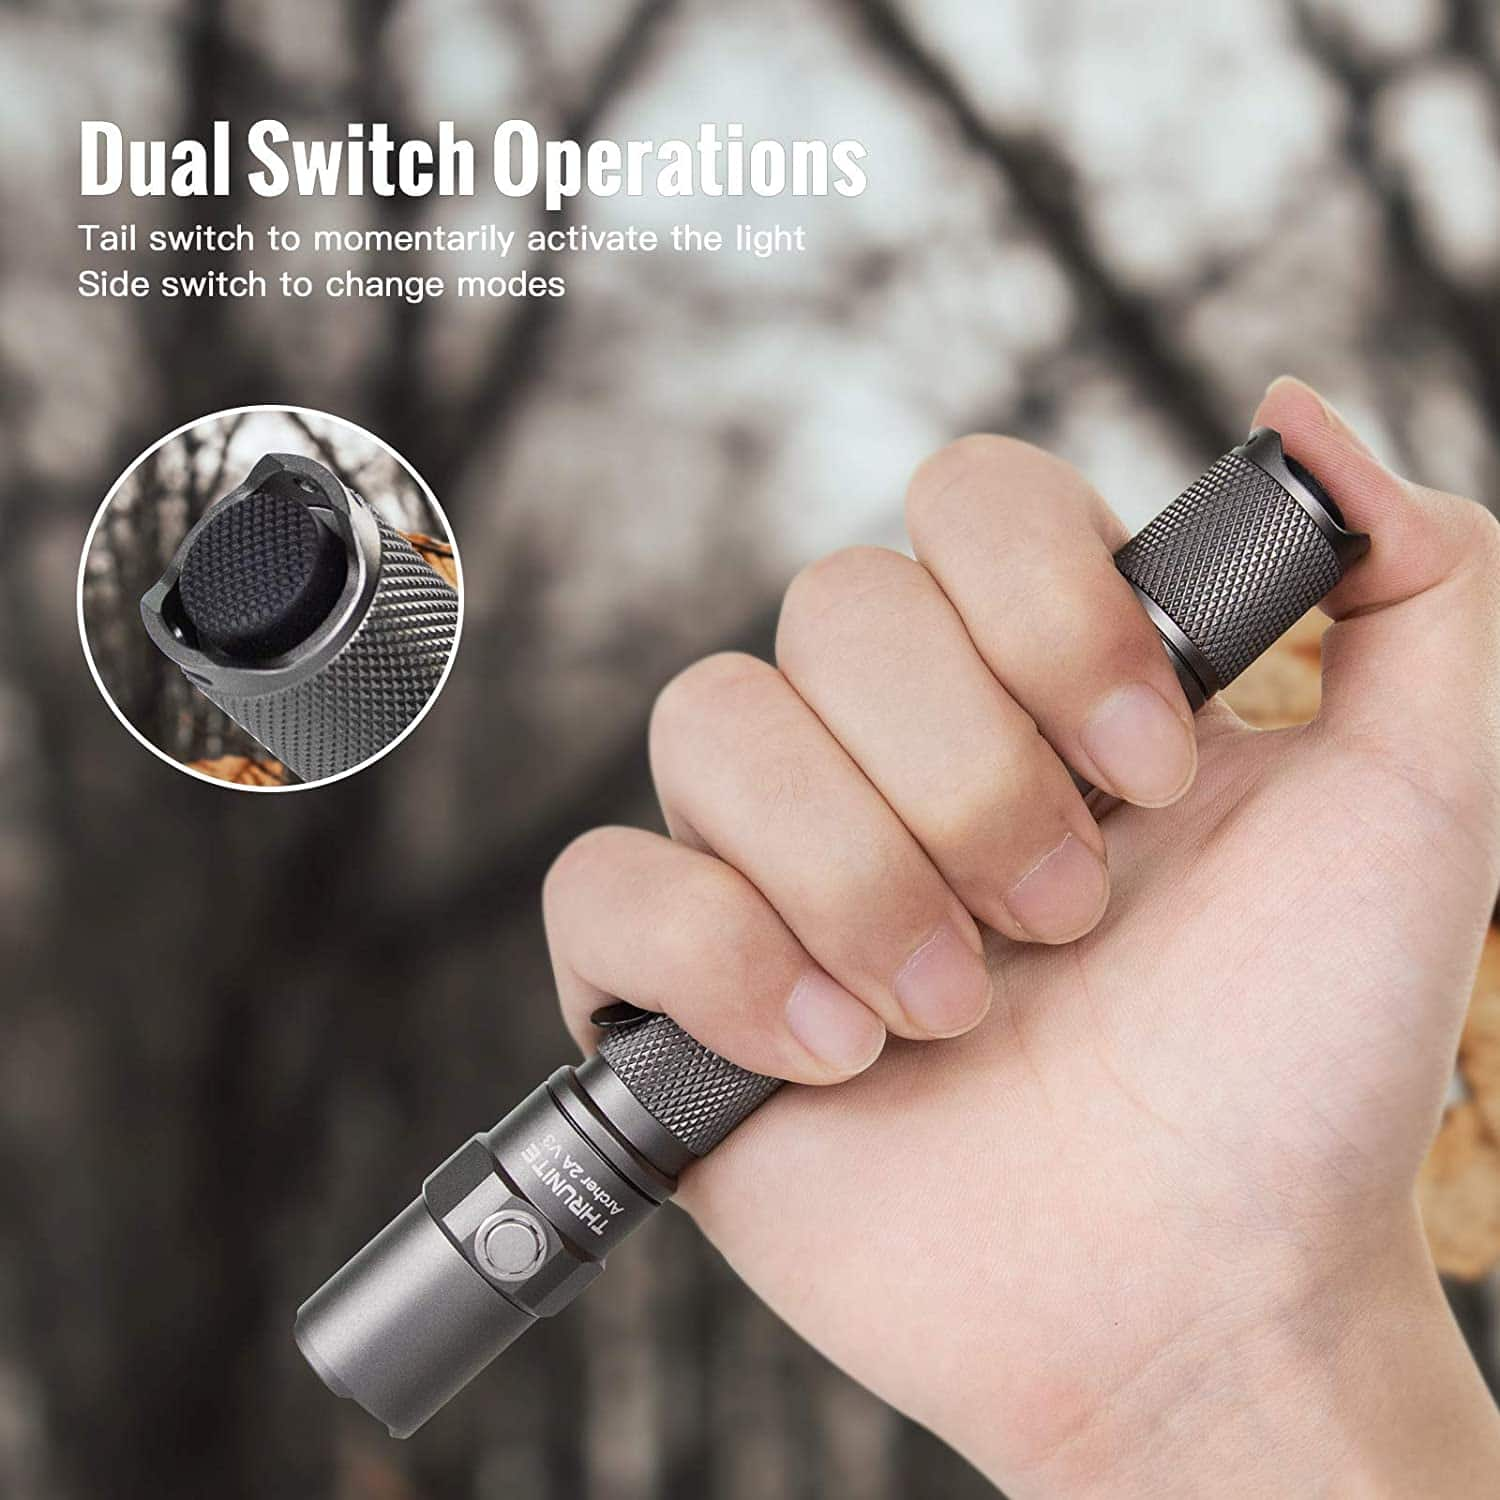 30% off Metal Grey ThruNite LED Flashlight Archer 2A V3 (500 Lumens AA Flashlight, IPX8 cool white) $25.19